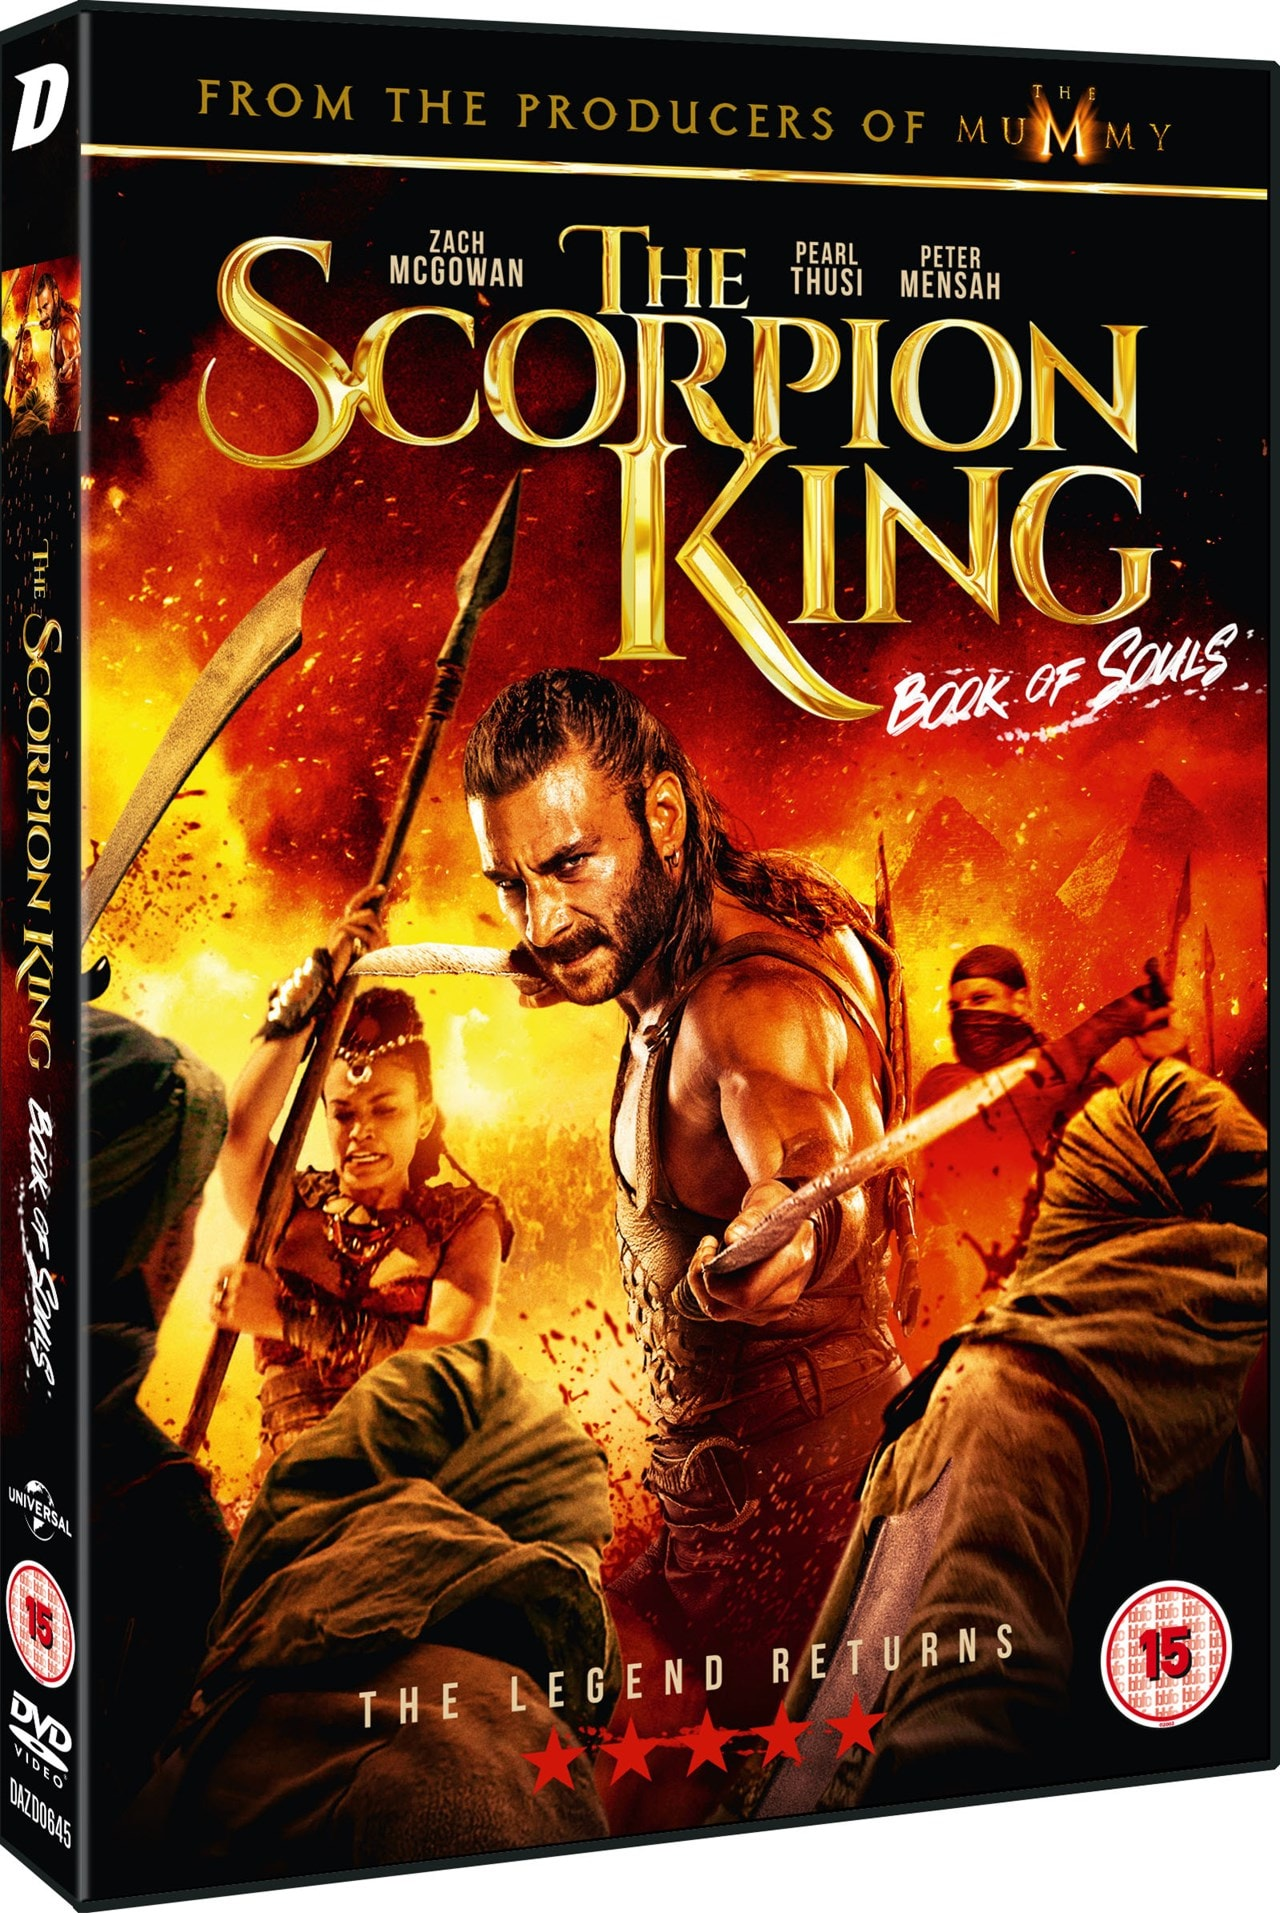 The Scorpion King - Book of Souls - 2